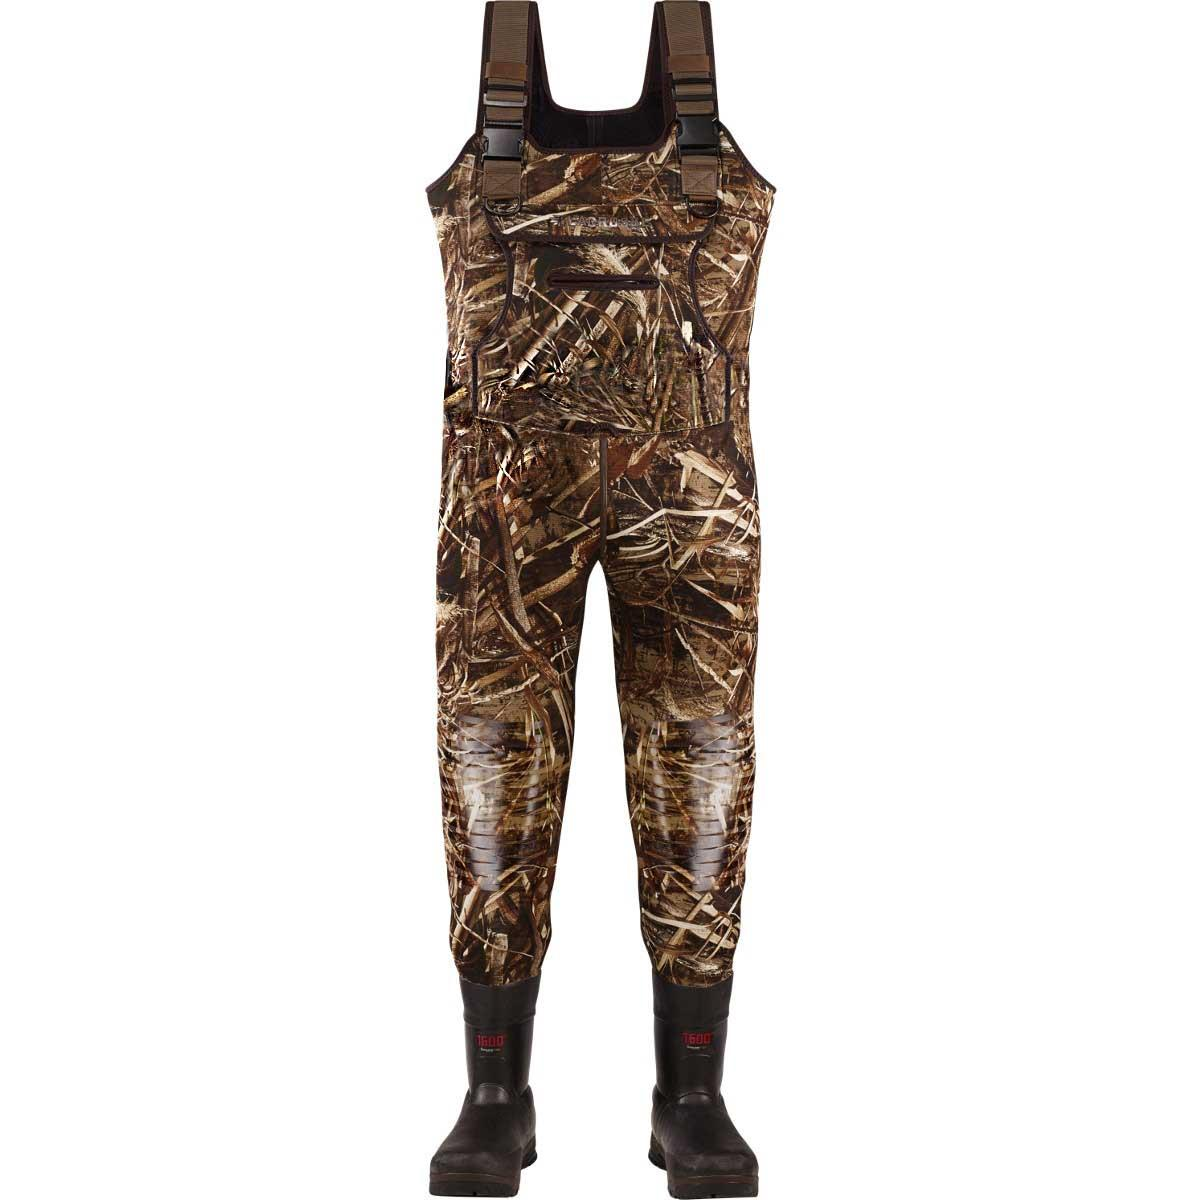 Lacrosse Swamp Tuff Chest Waders, 1600g in Realtree Max 5, Stout Sizes